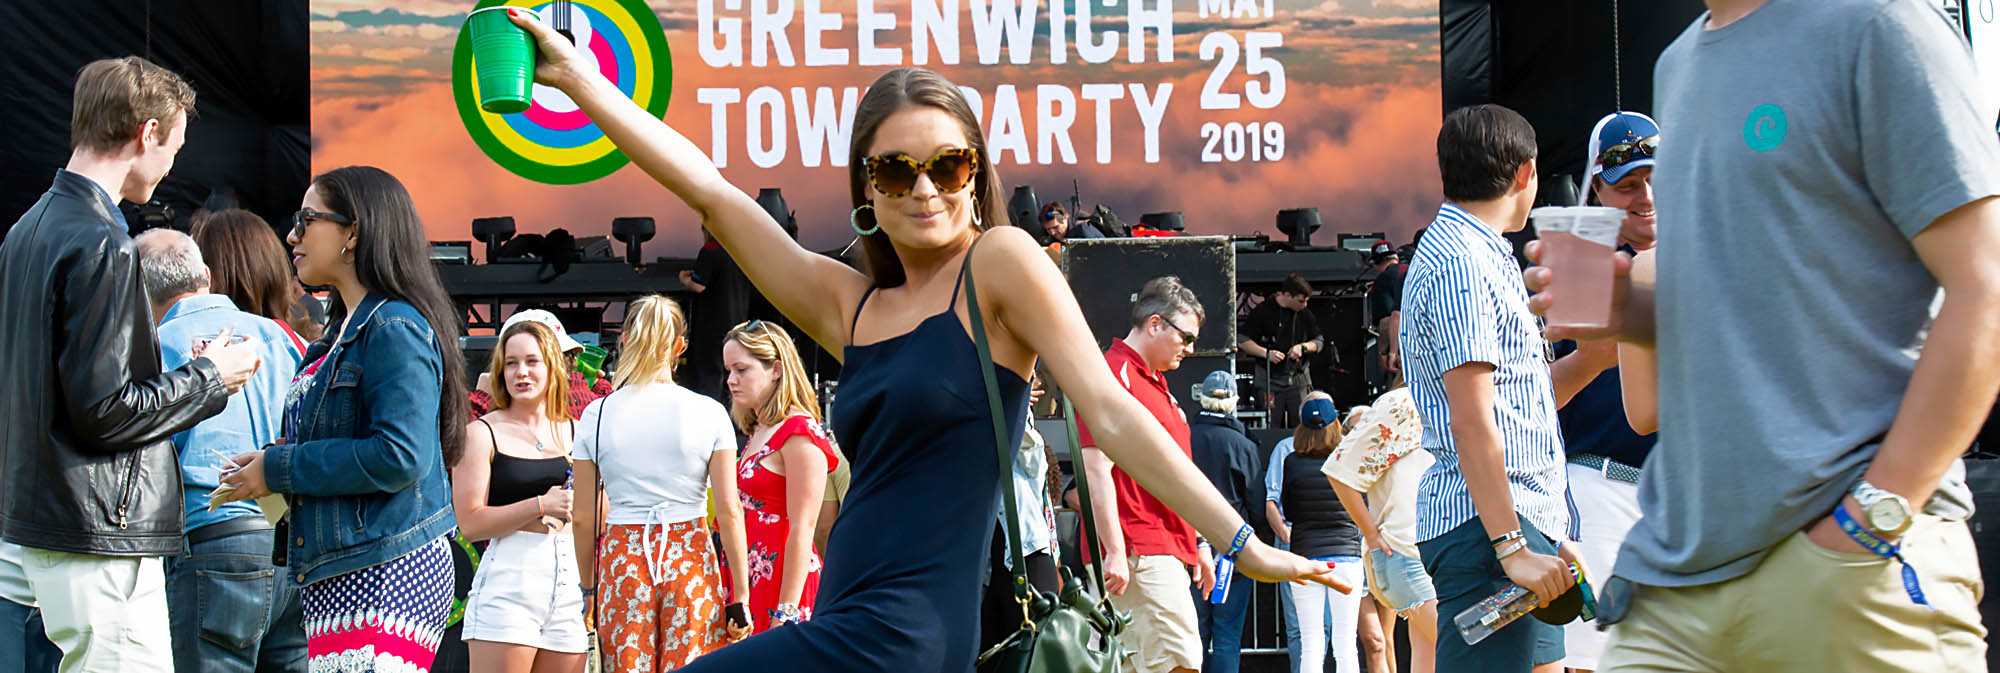 'Photo Gallery: Greenwich Town Party 2019